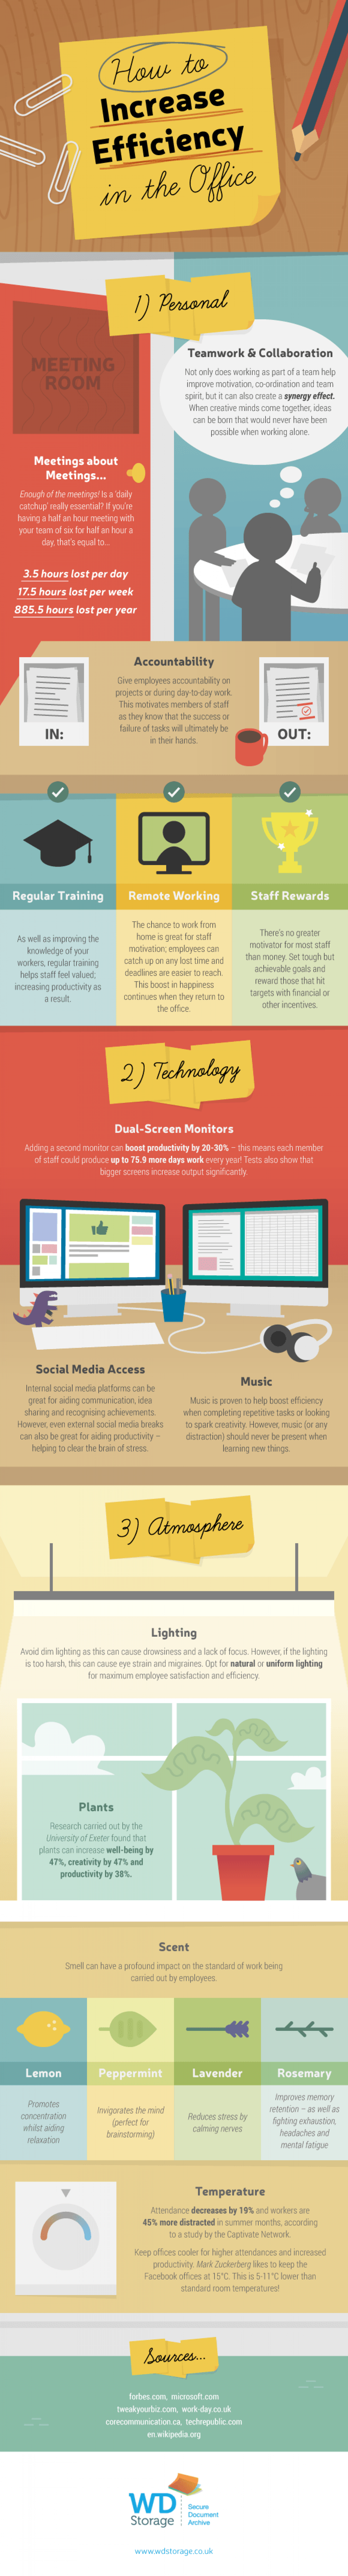 How to Increase Office Efficiency Infographic